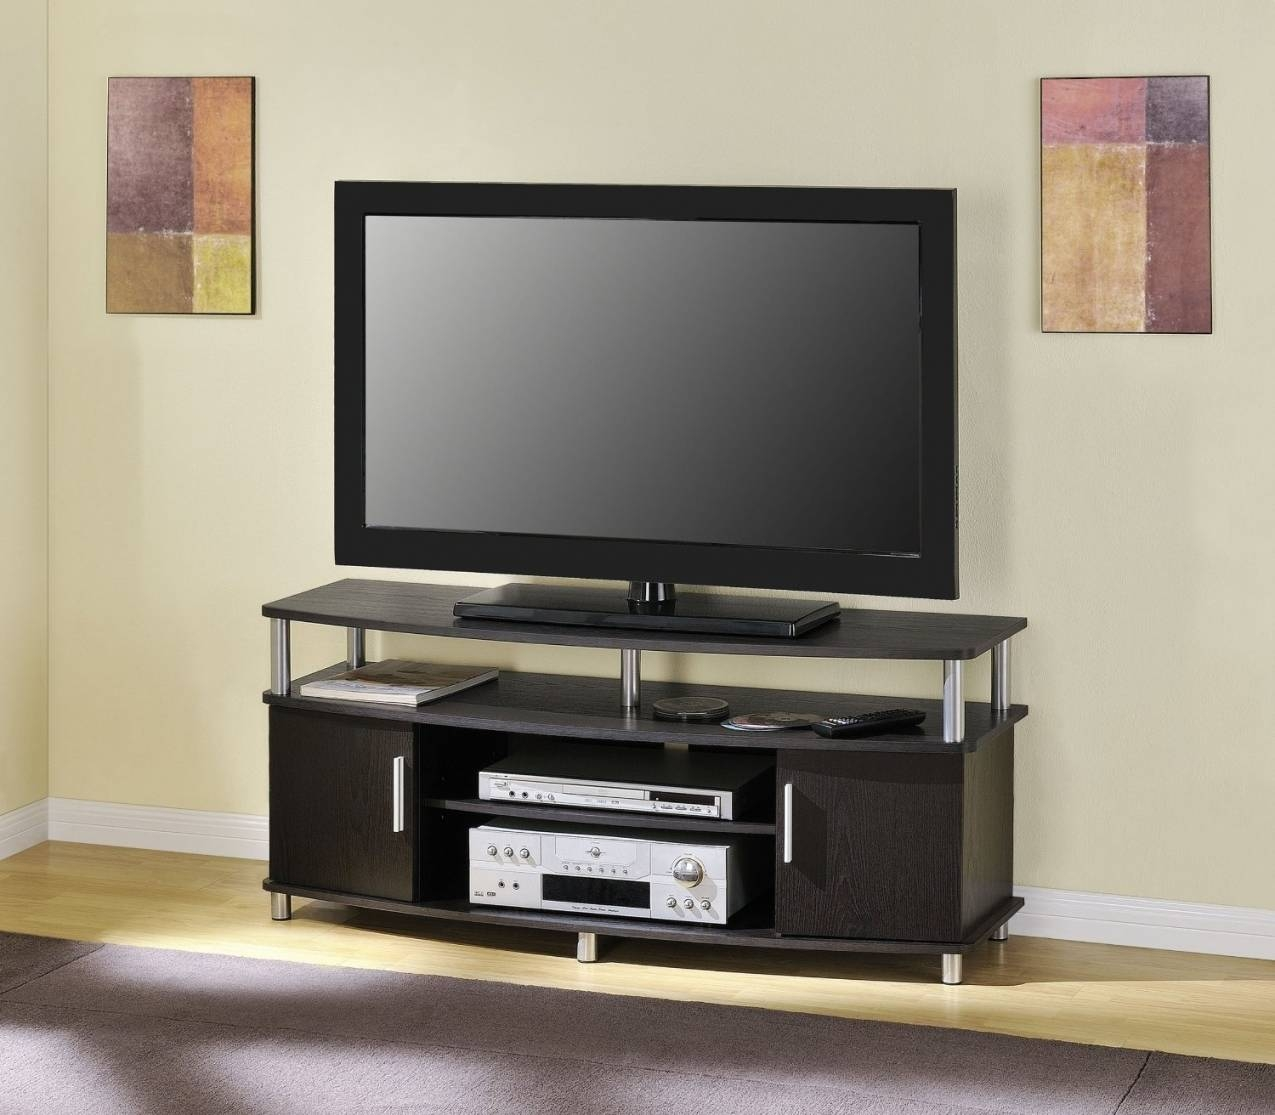 Elegant Best Buy Flat Screen Tv Stands Ideas | Vgmnation with Modern Tv Stands for Flat Screens (Image 2 of 15)